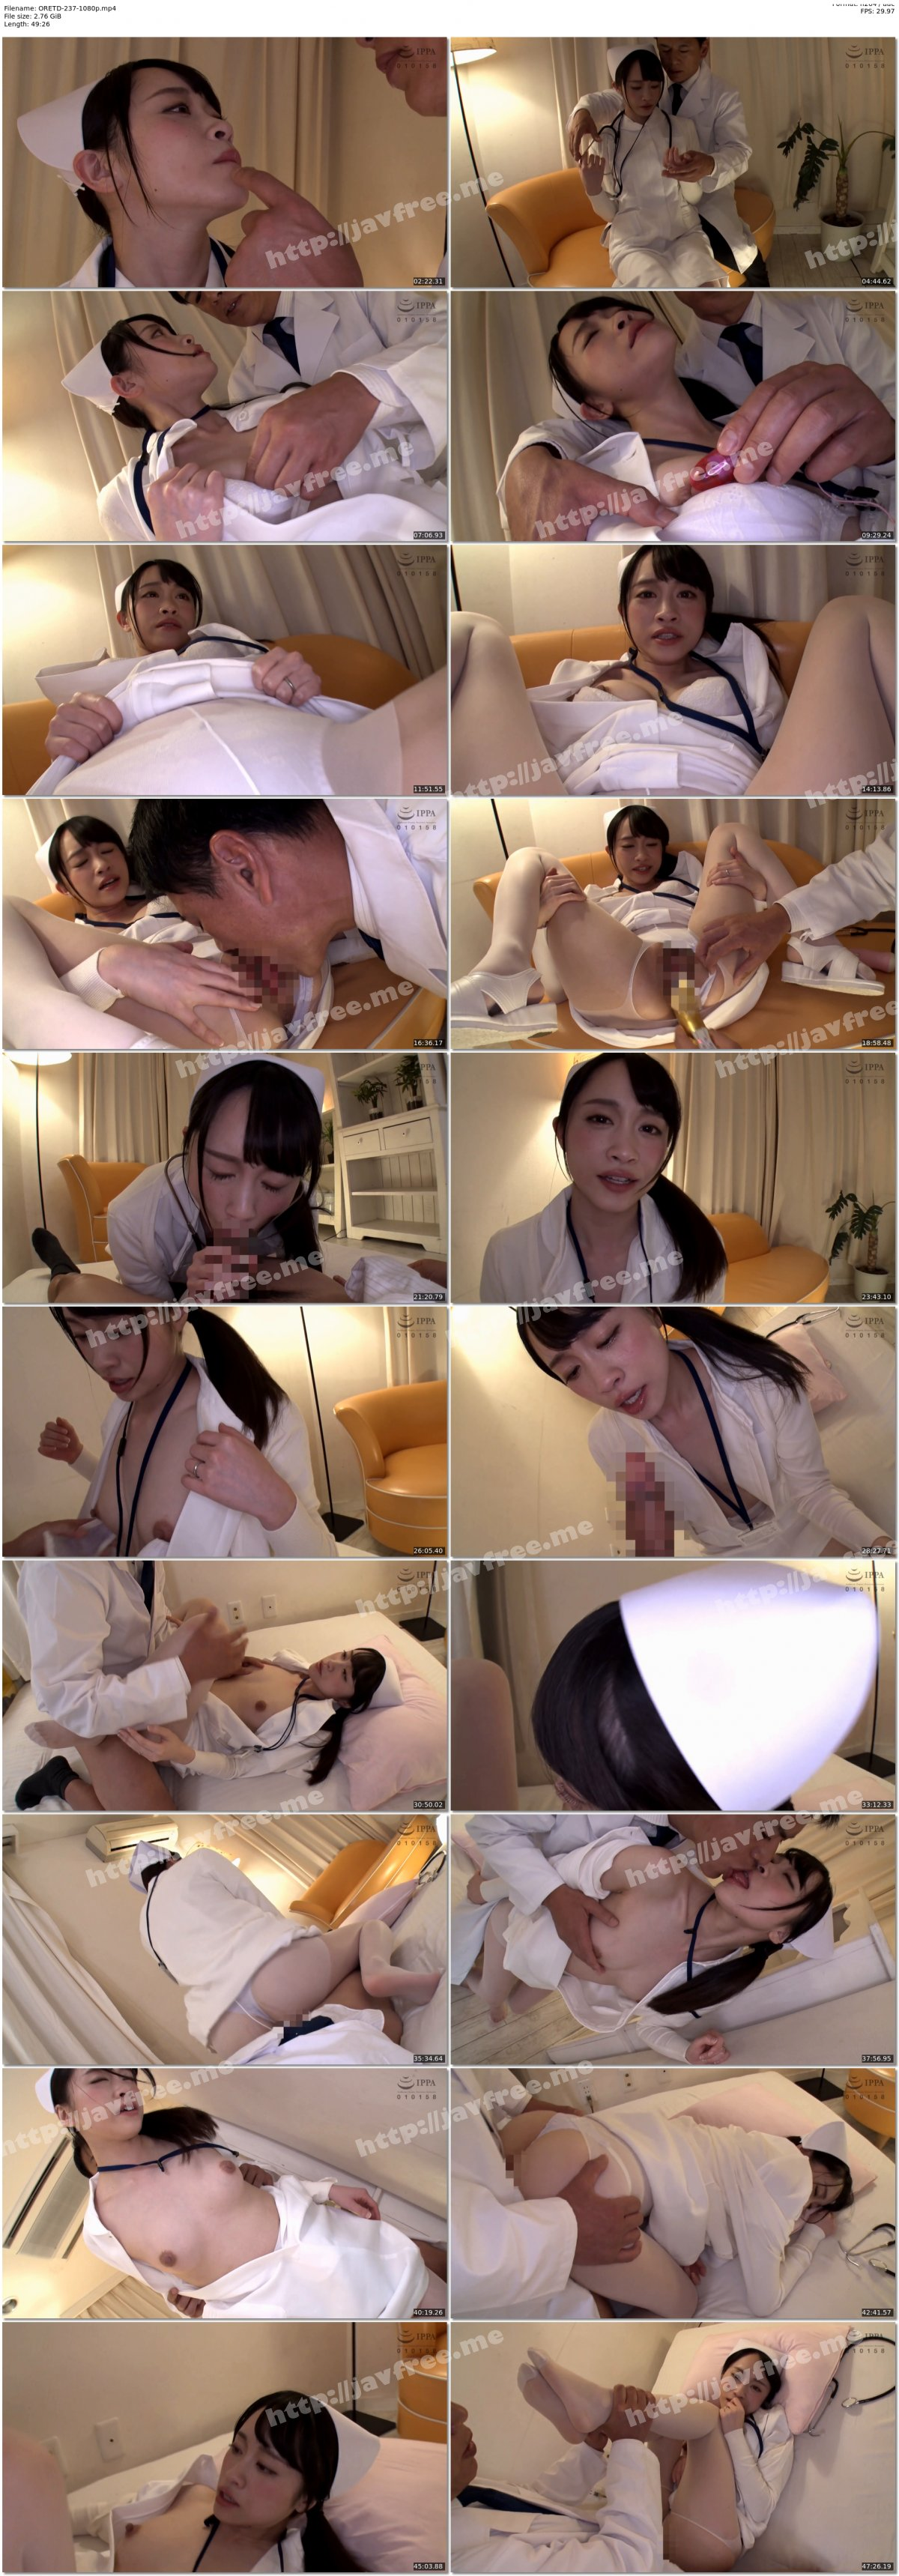 [HD][ORETD-237] 桐山さん - image ORETD-237-1080p on https://javfree.me